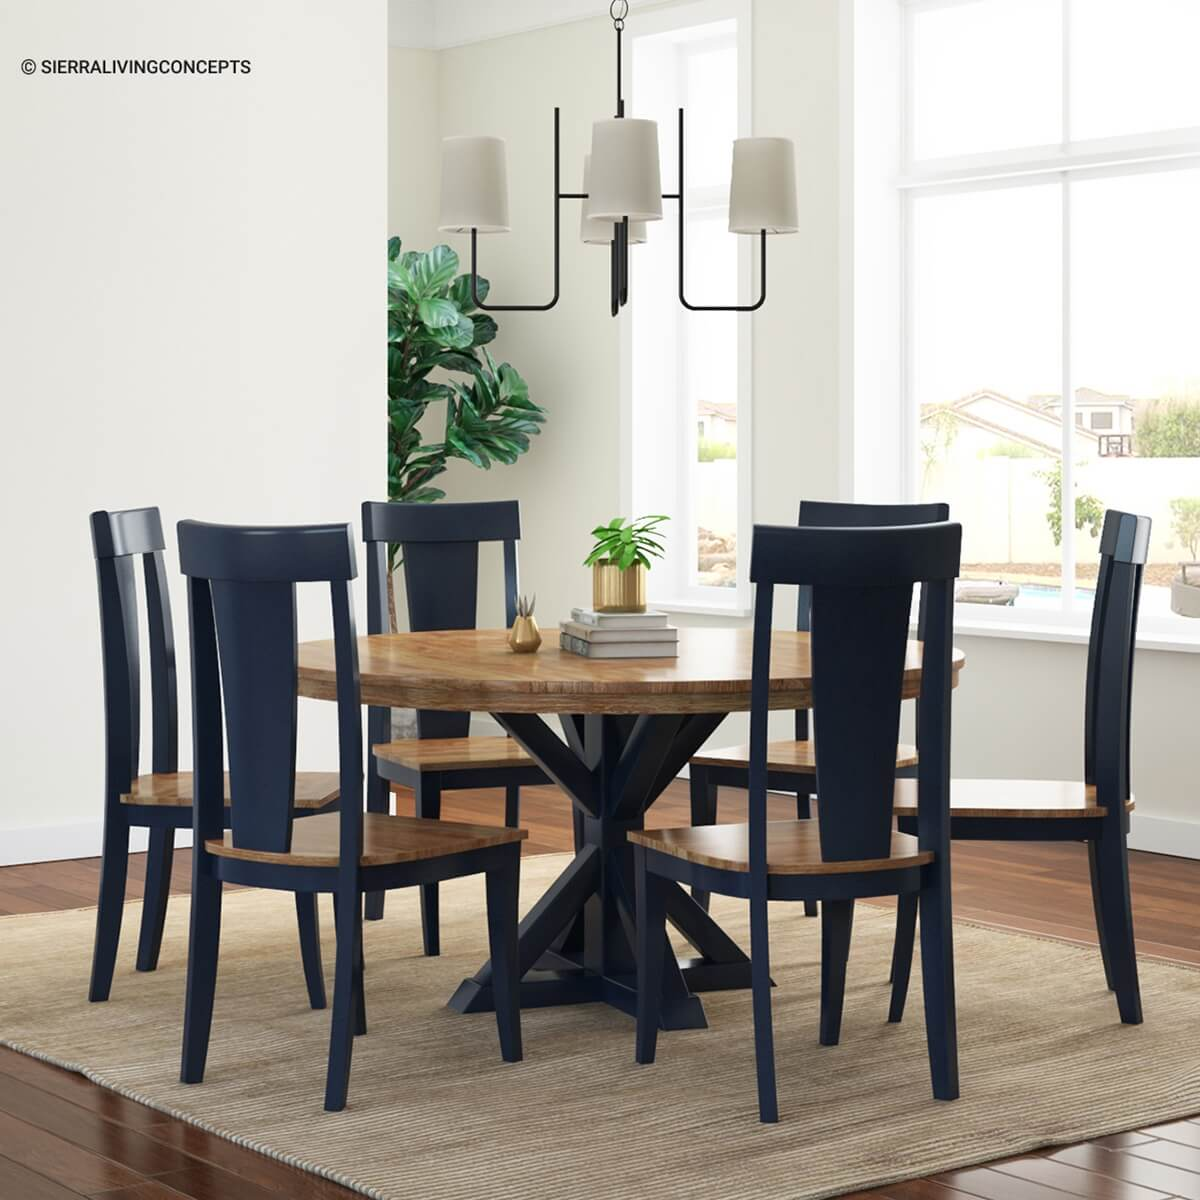 Salzburg Two Tone Solid Wood Dining Table Chair Set